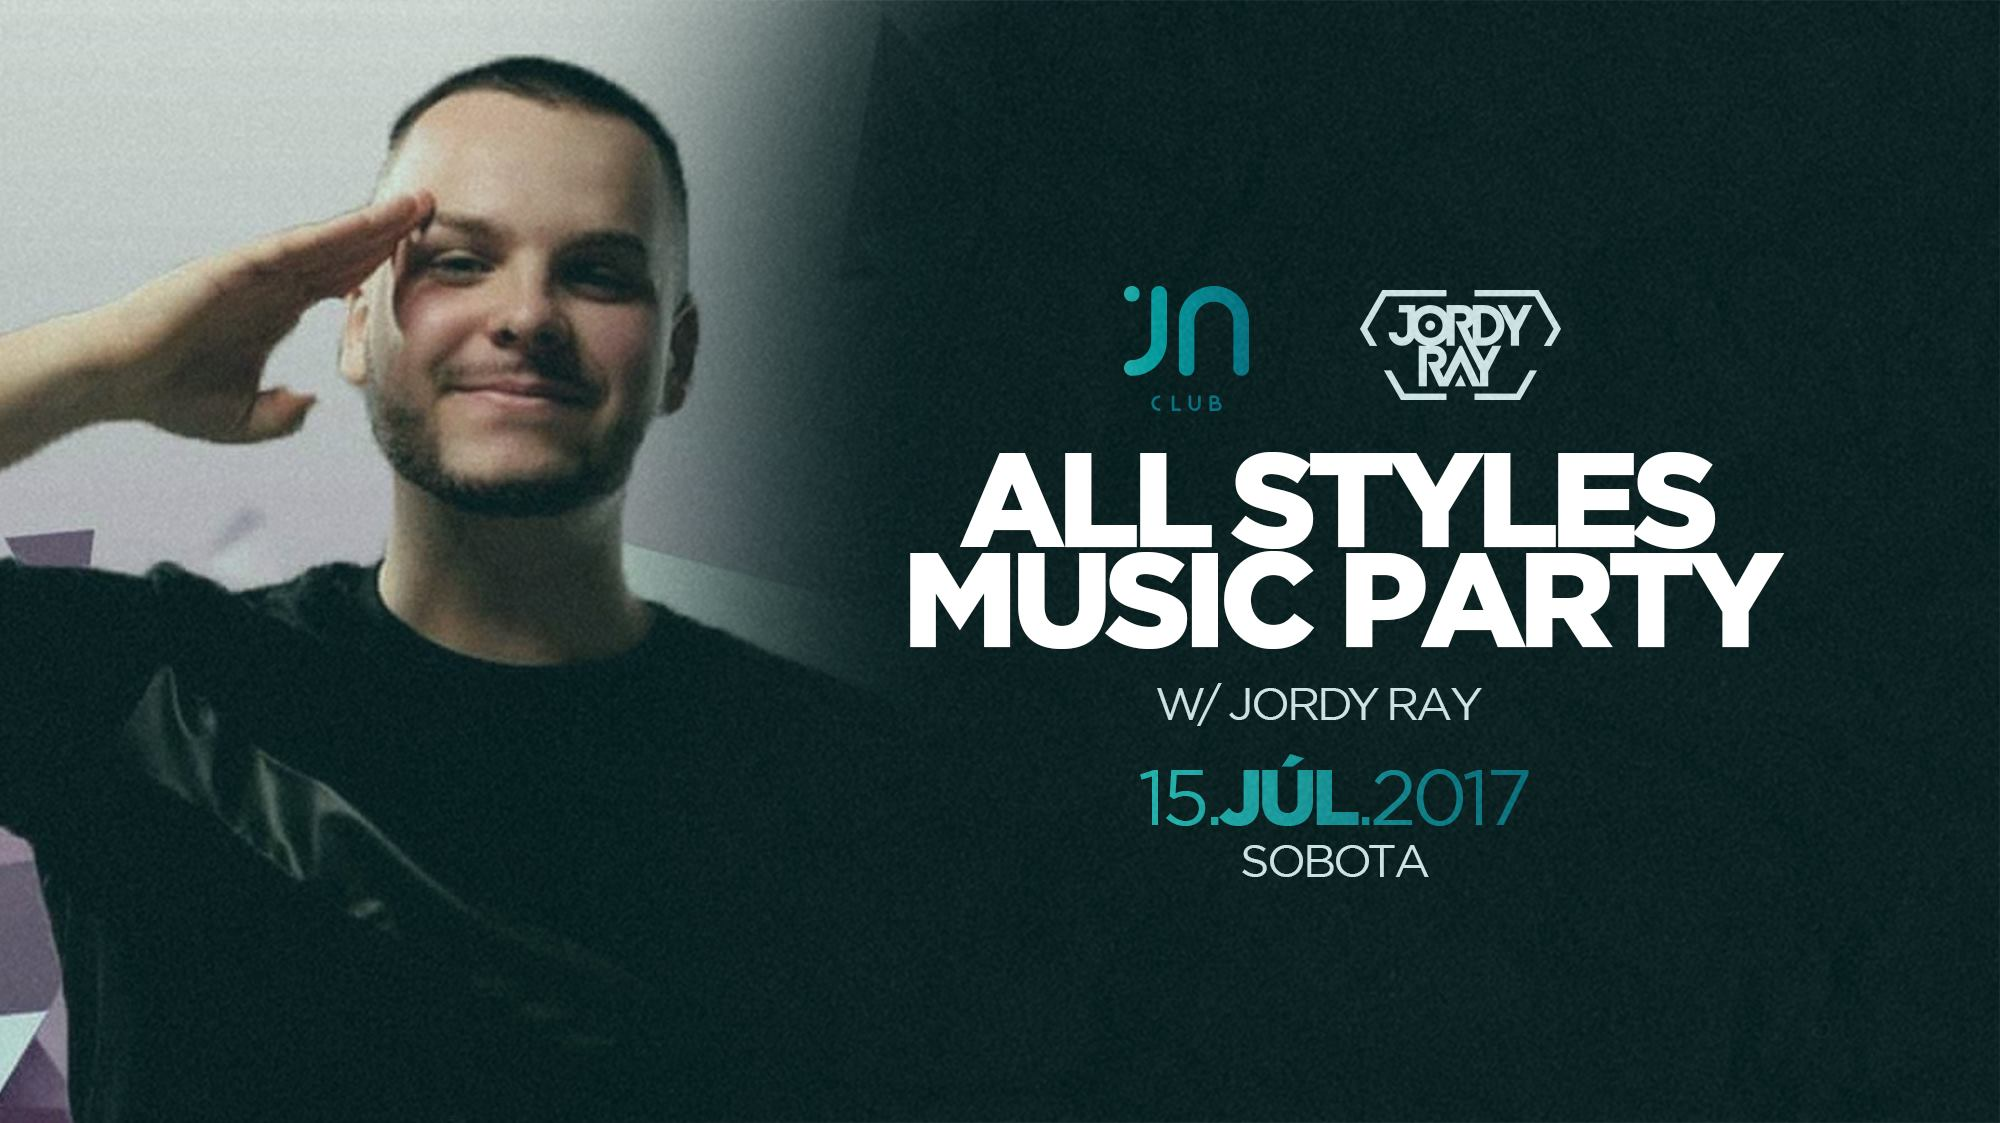 All styles music party w/ Jordy Ray